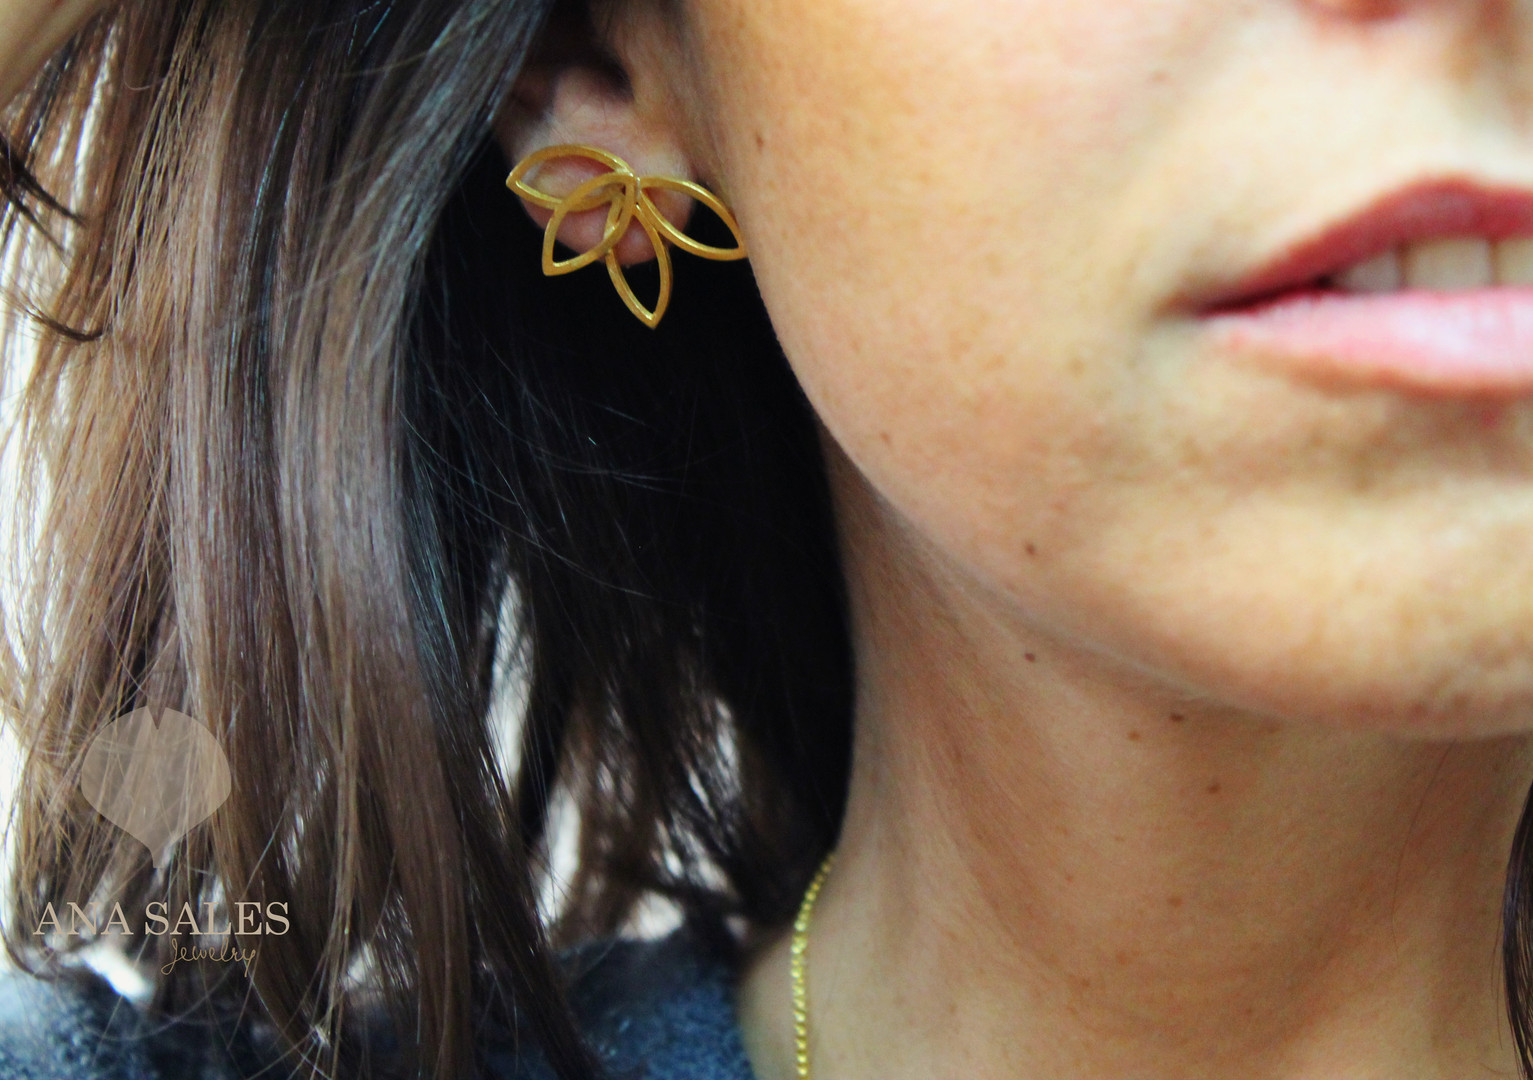 RAMI brincos | earrings